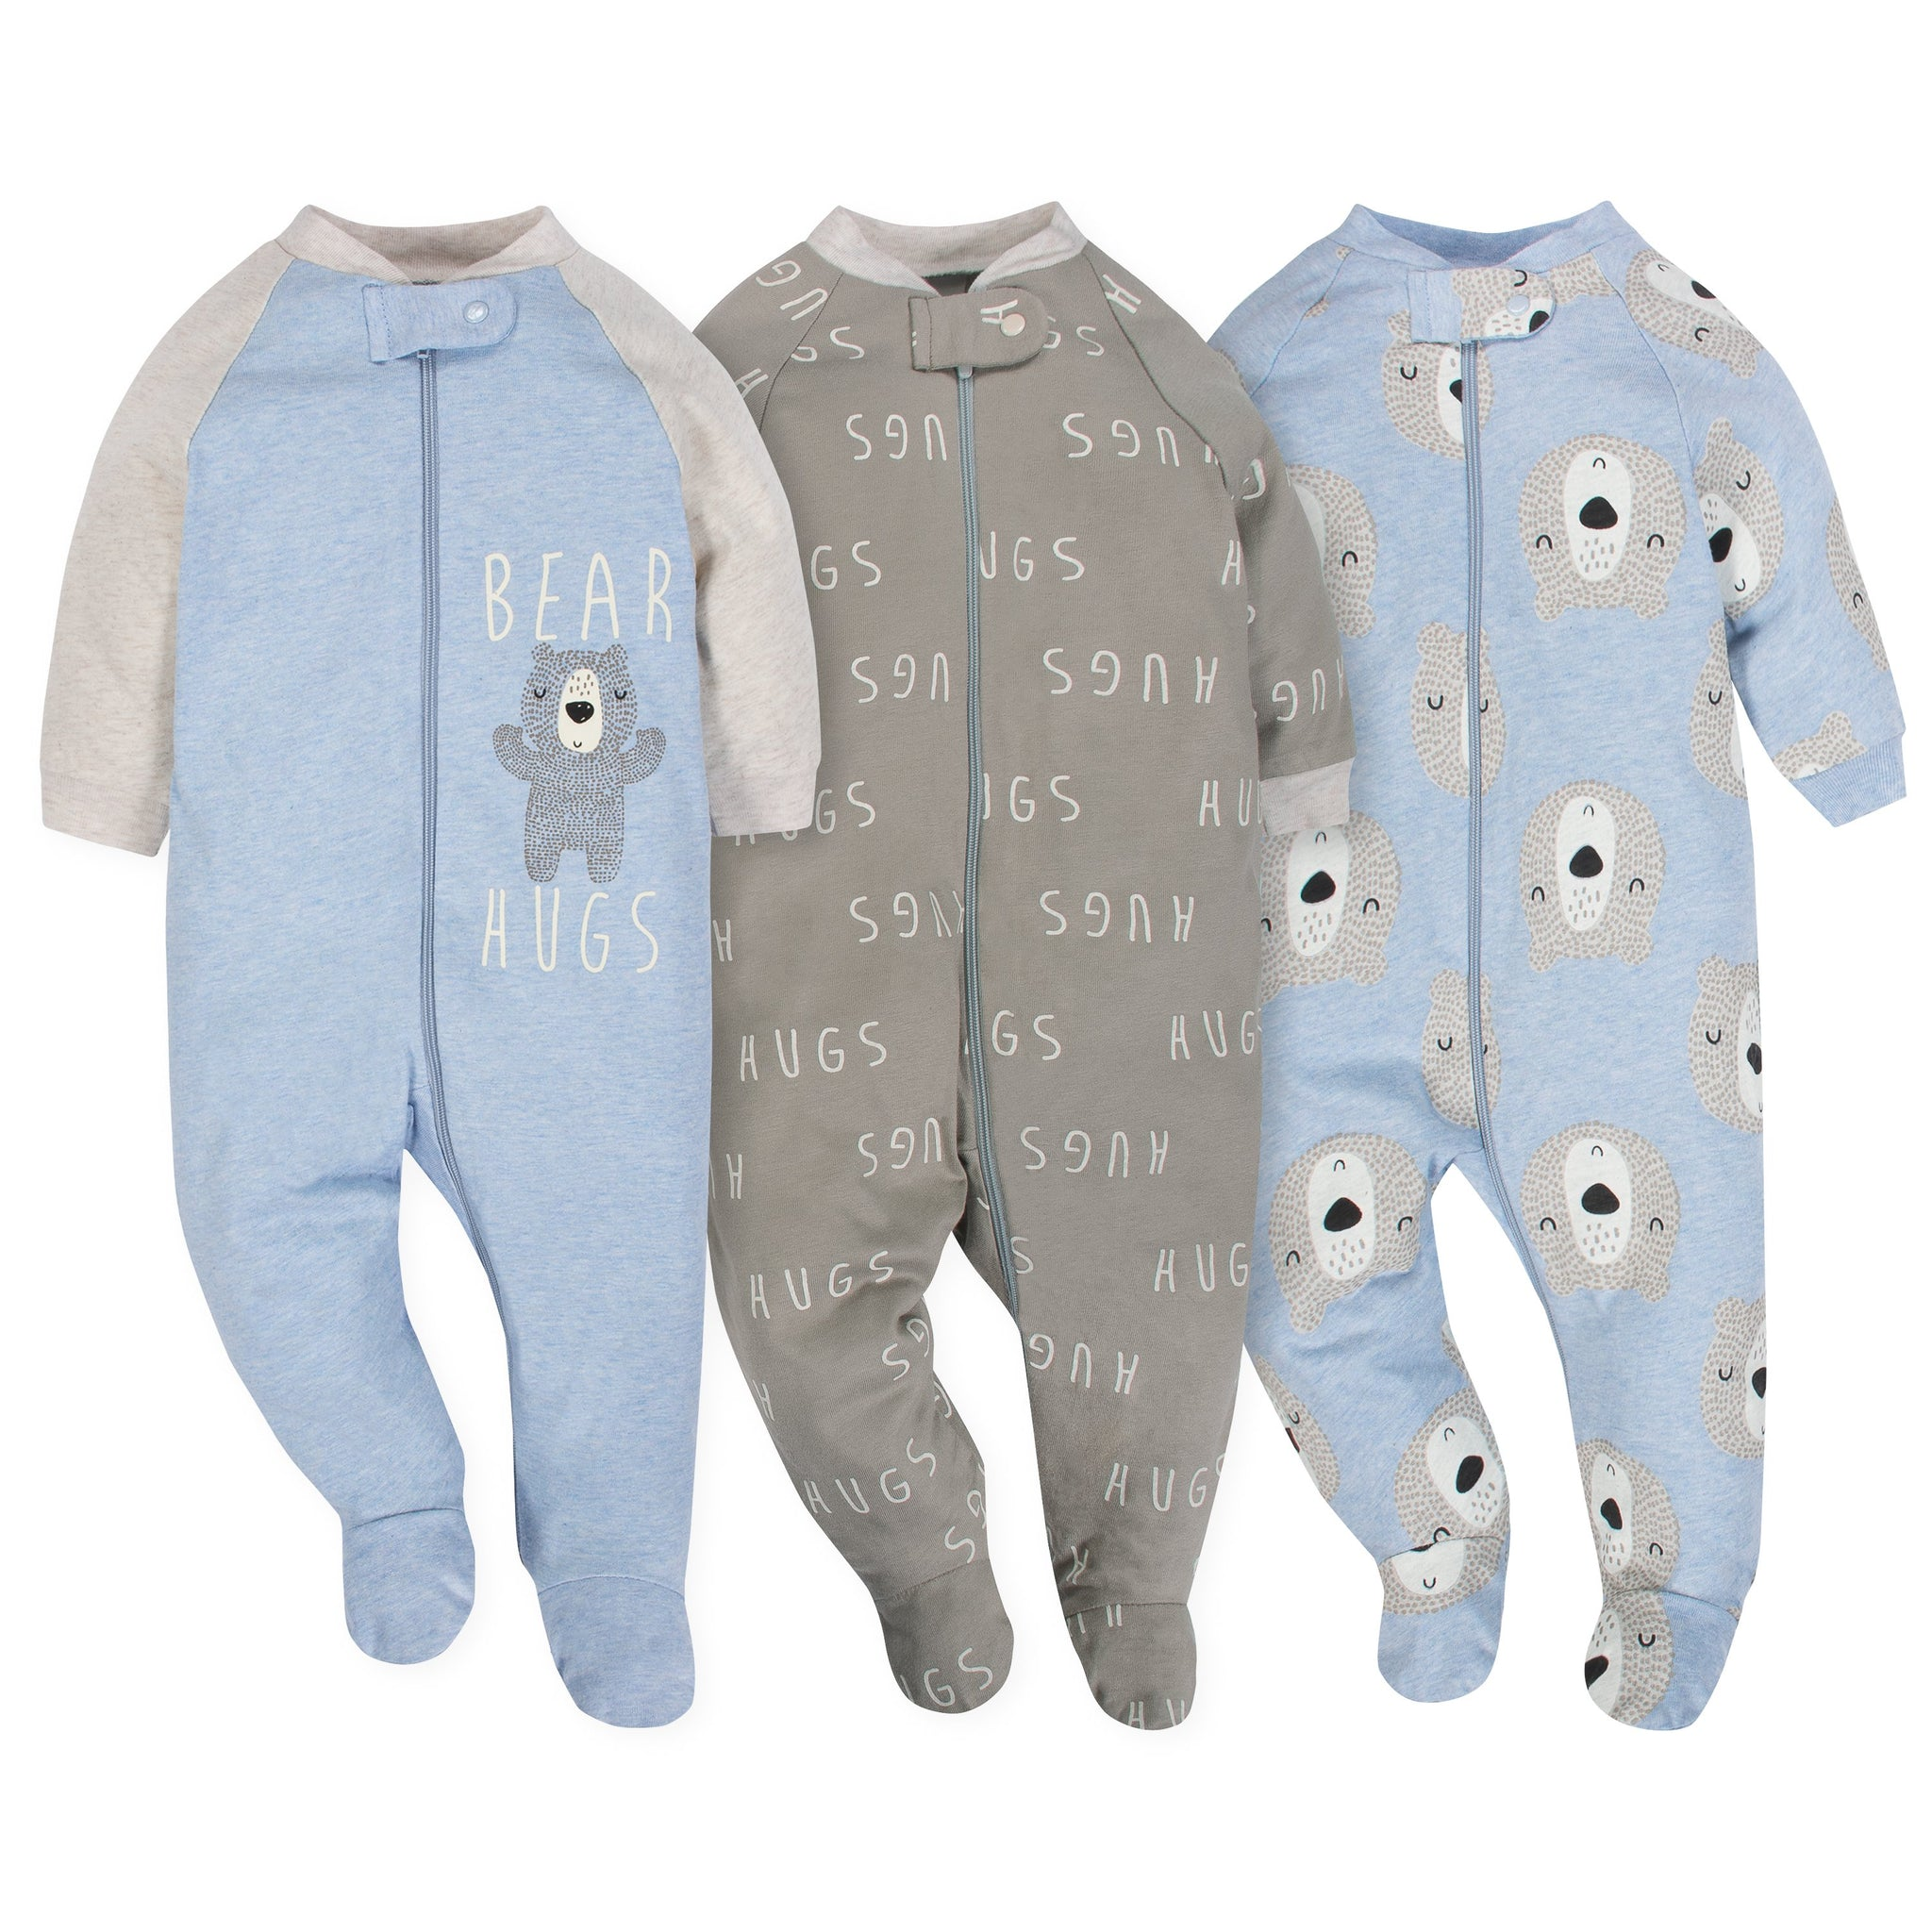 Gerber 3-Pack Organic Baby Boy Sleep N' Play Set - Hugs